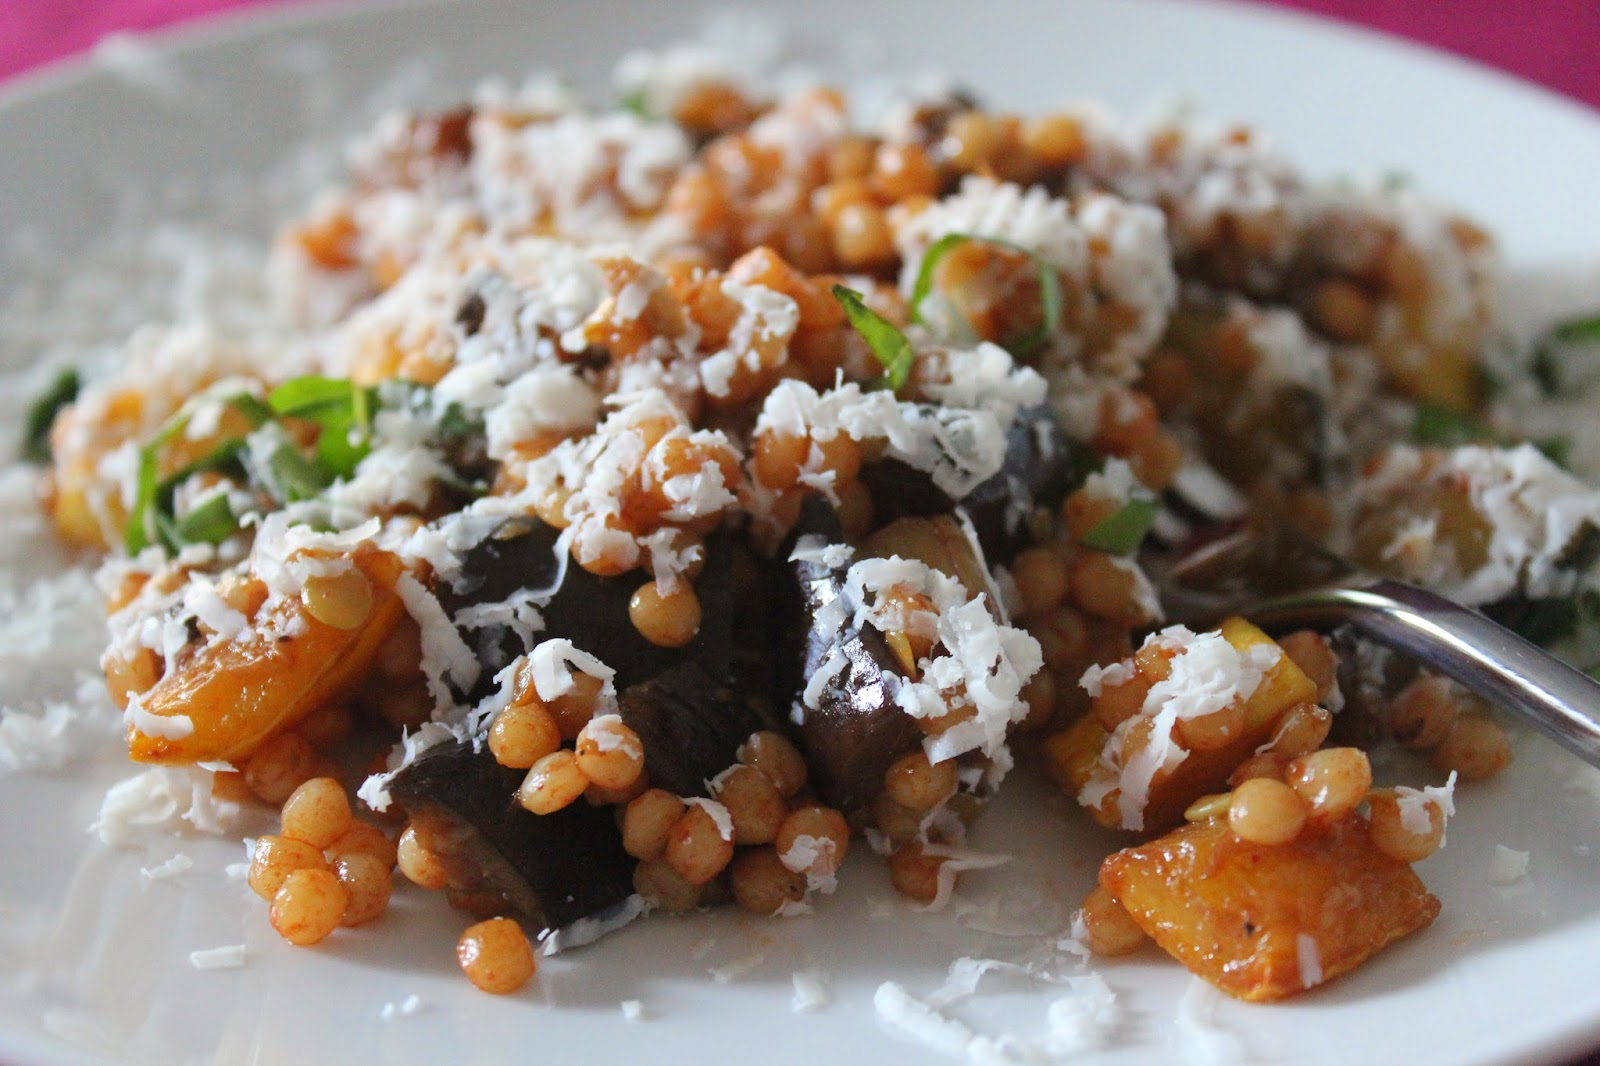 Israeli couscous with roasted squash and eggplant and ricotta salata